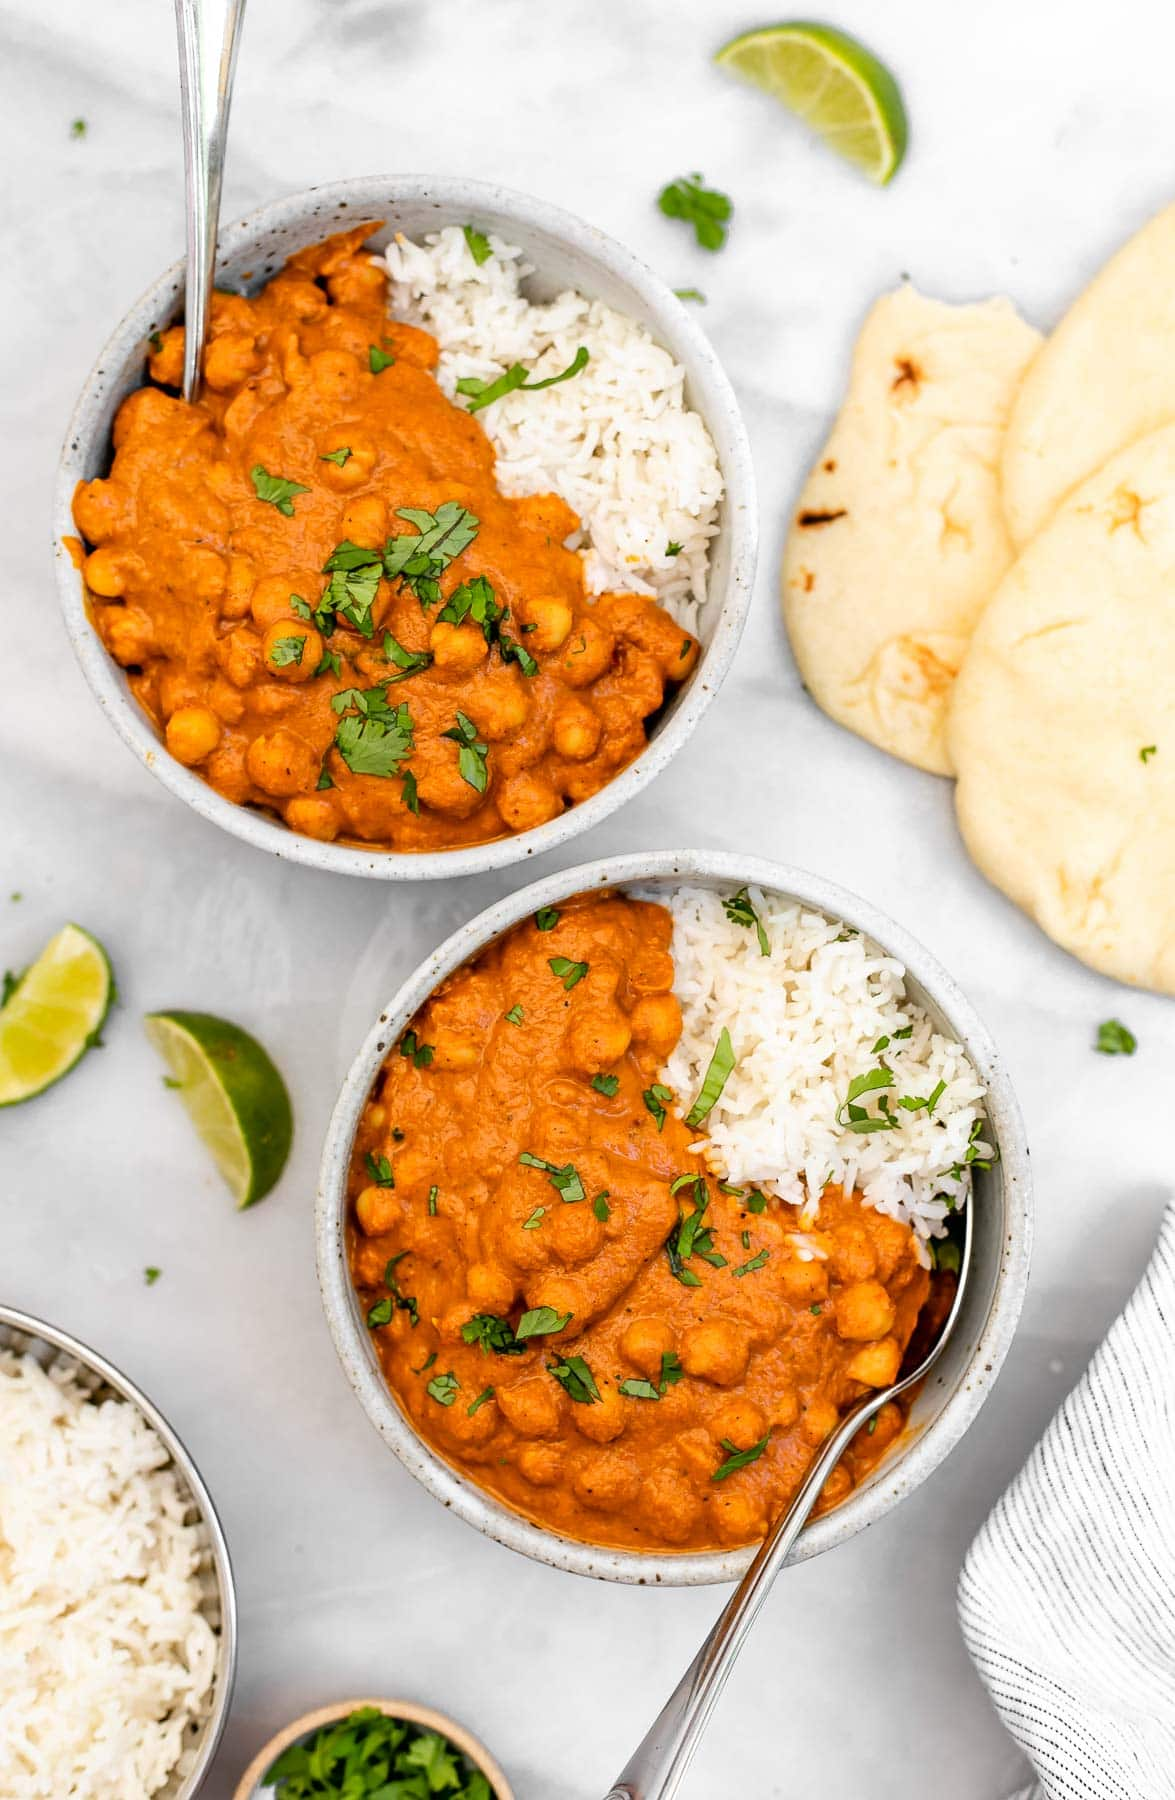 Two bowls with white rice, vegan tikka masala and naan on the side.